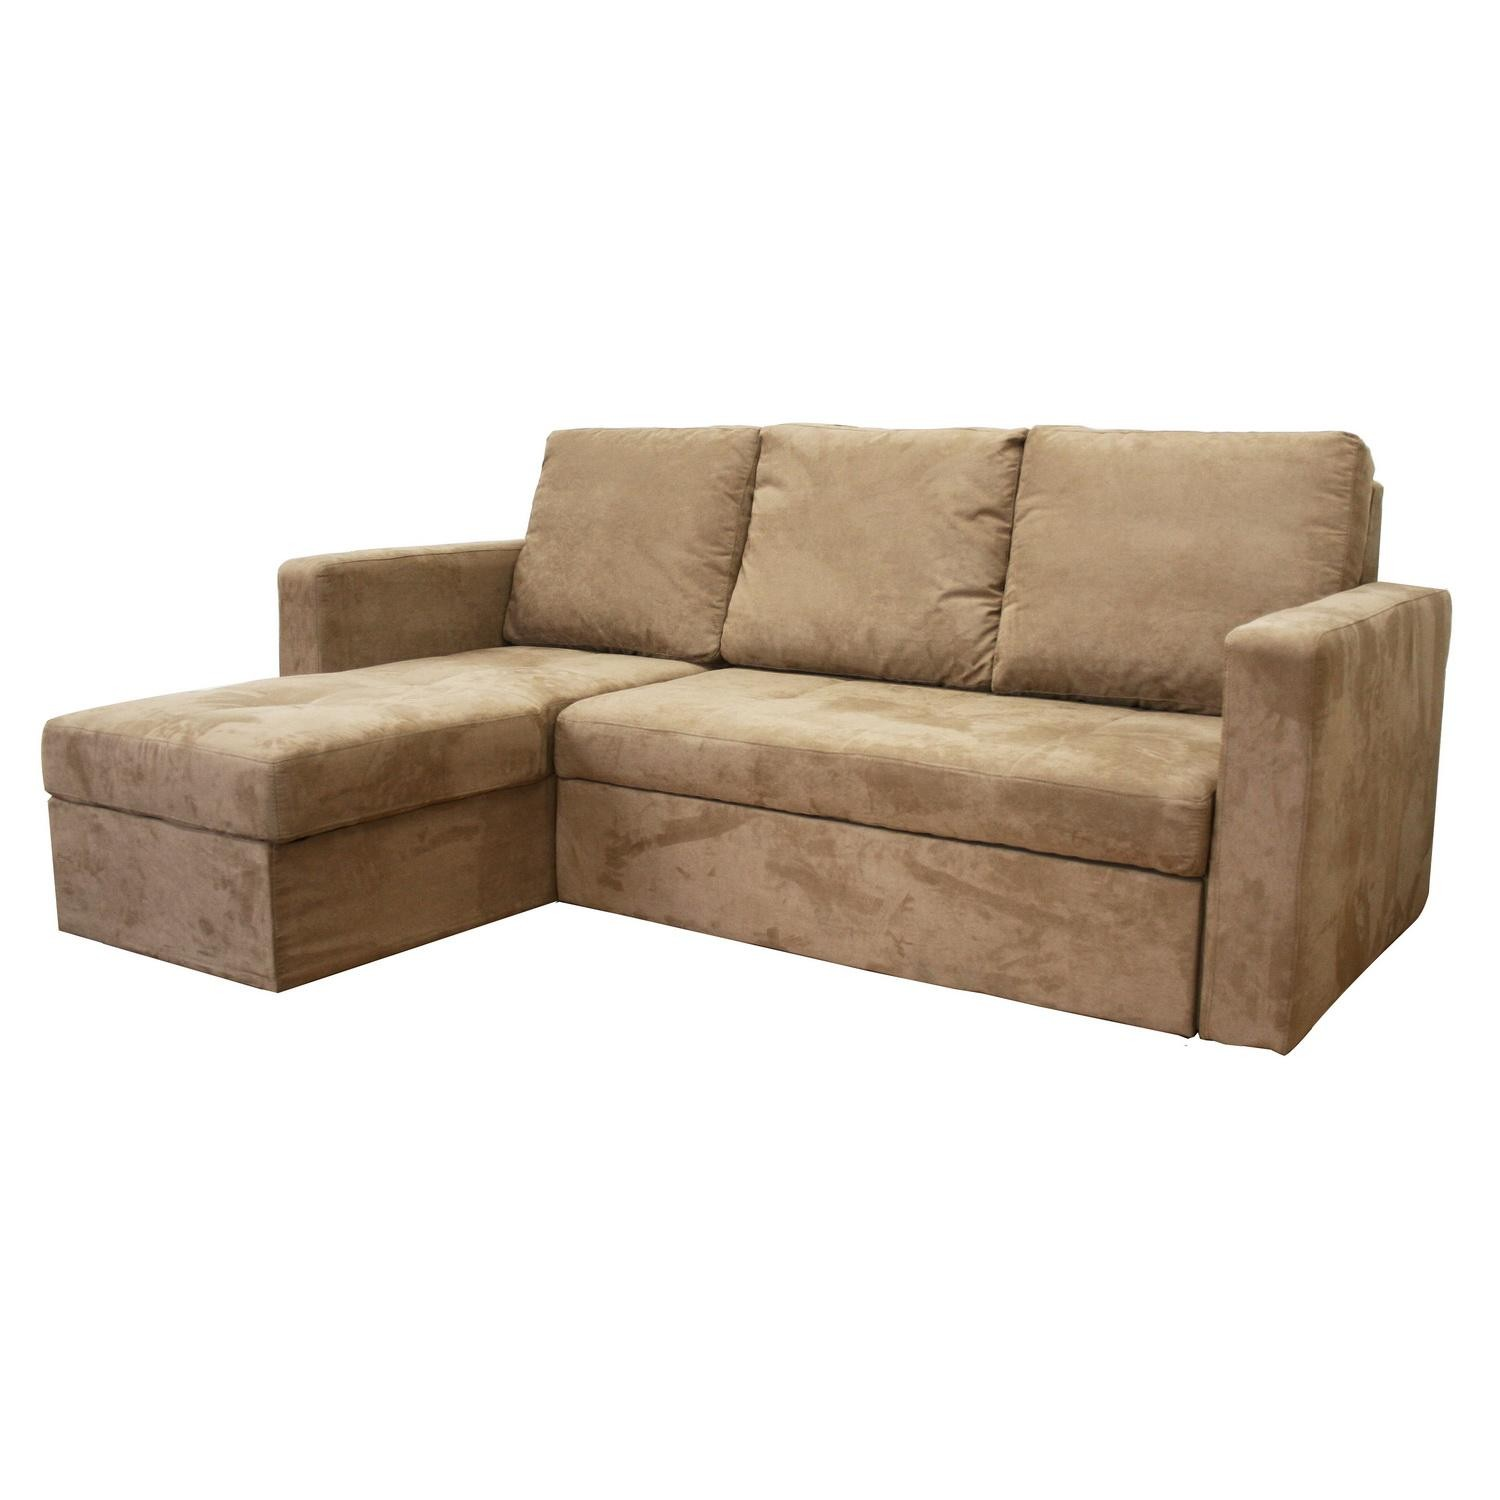 sectional sleeper sofa bed photo - 4